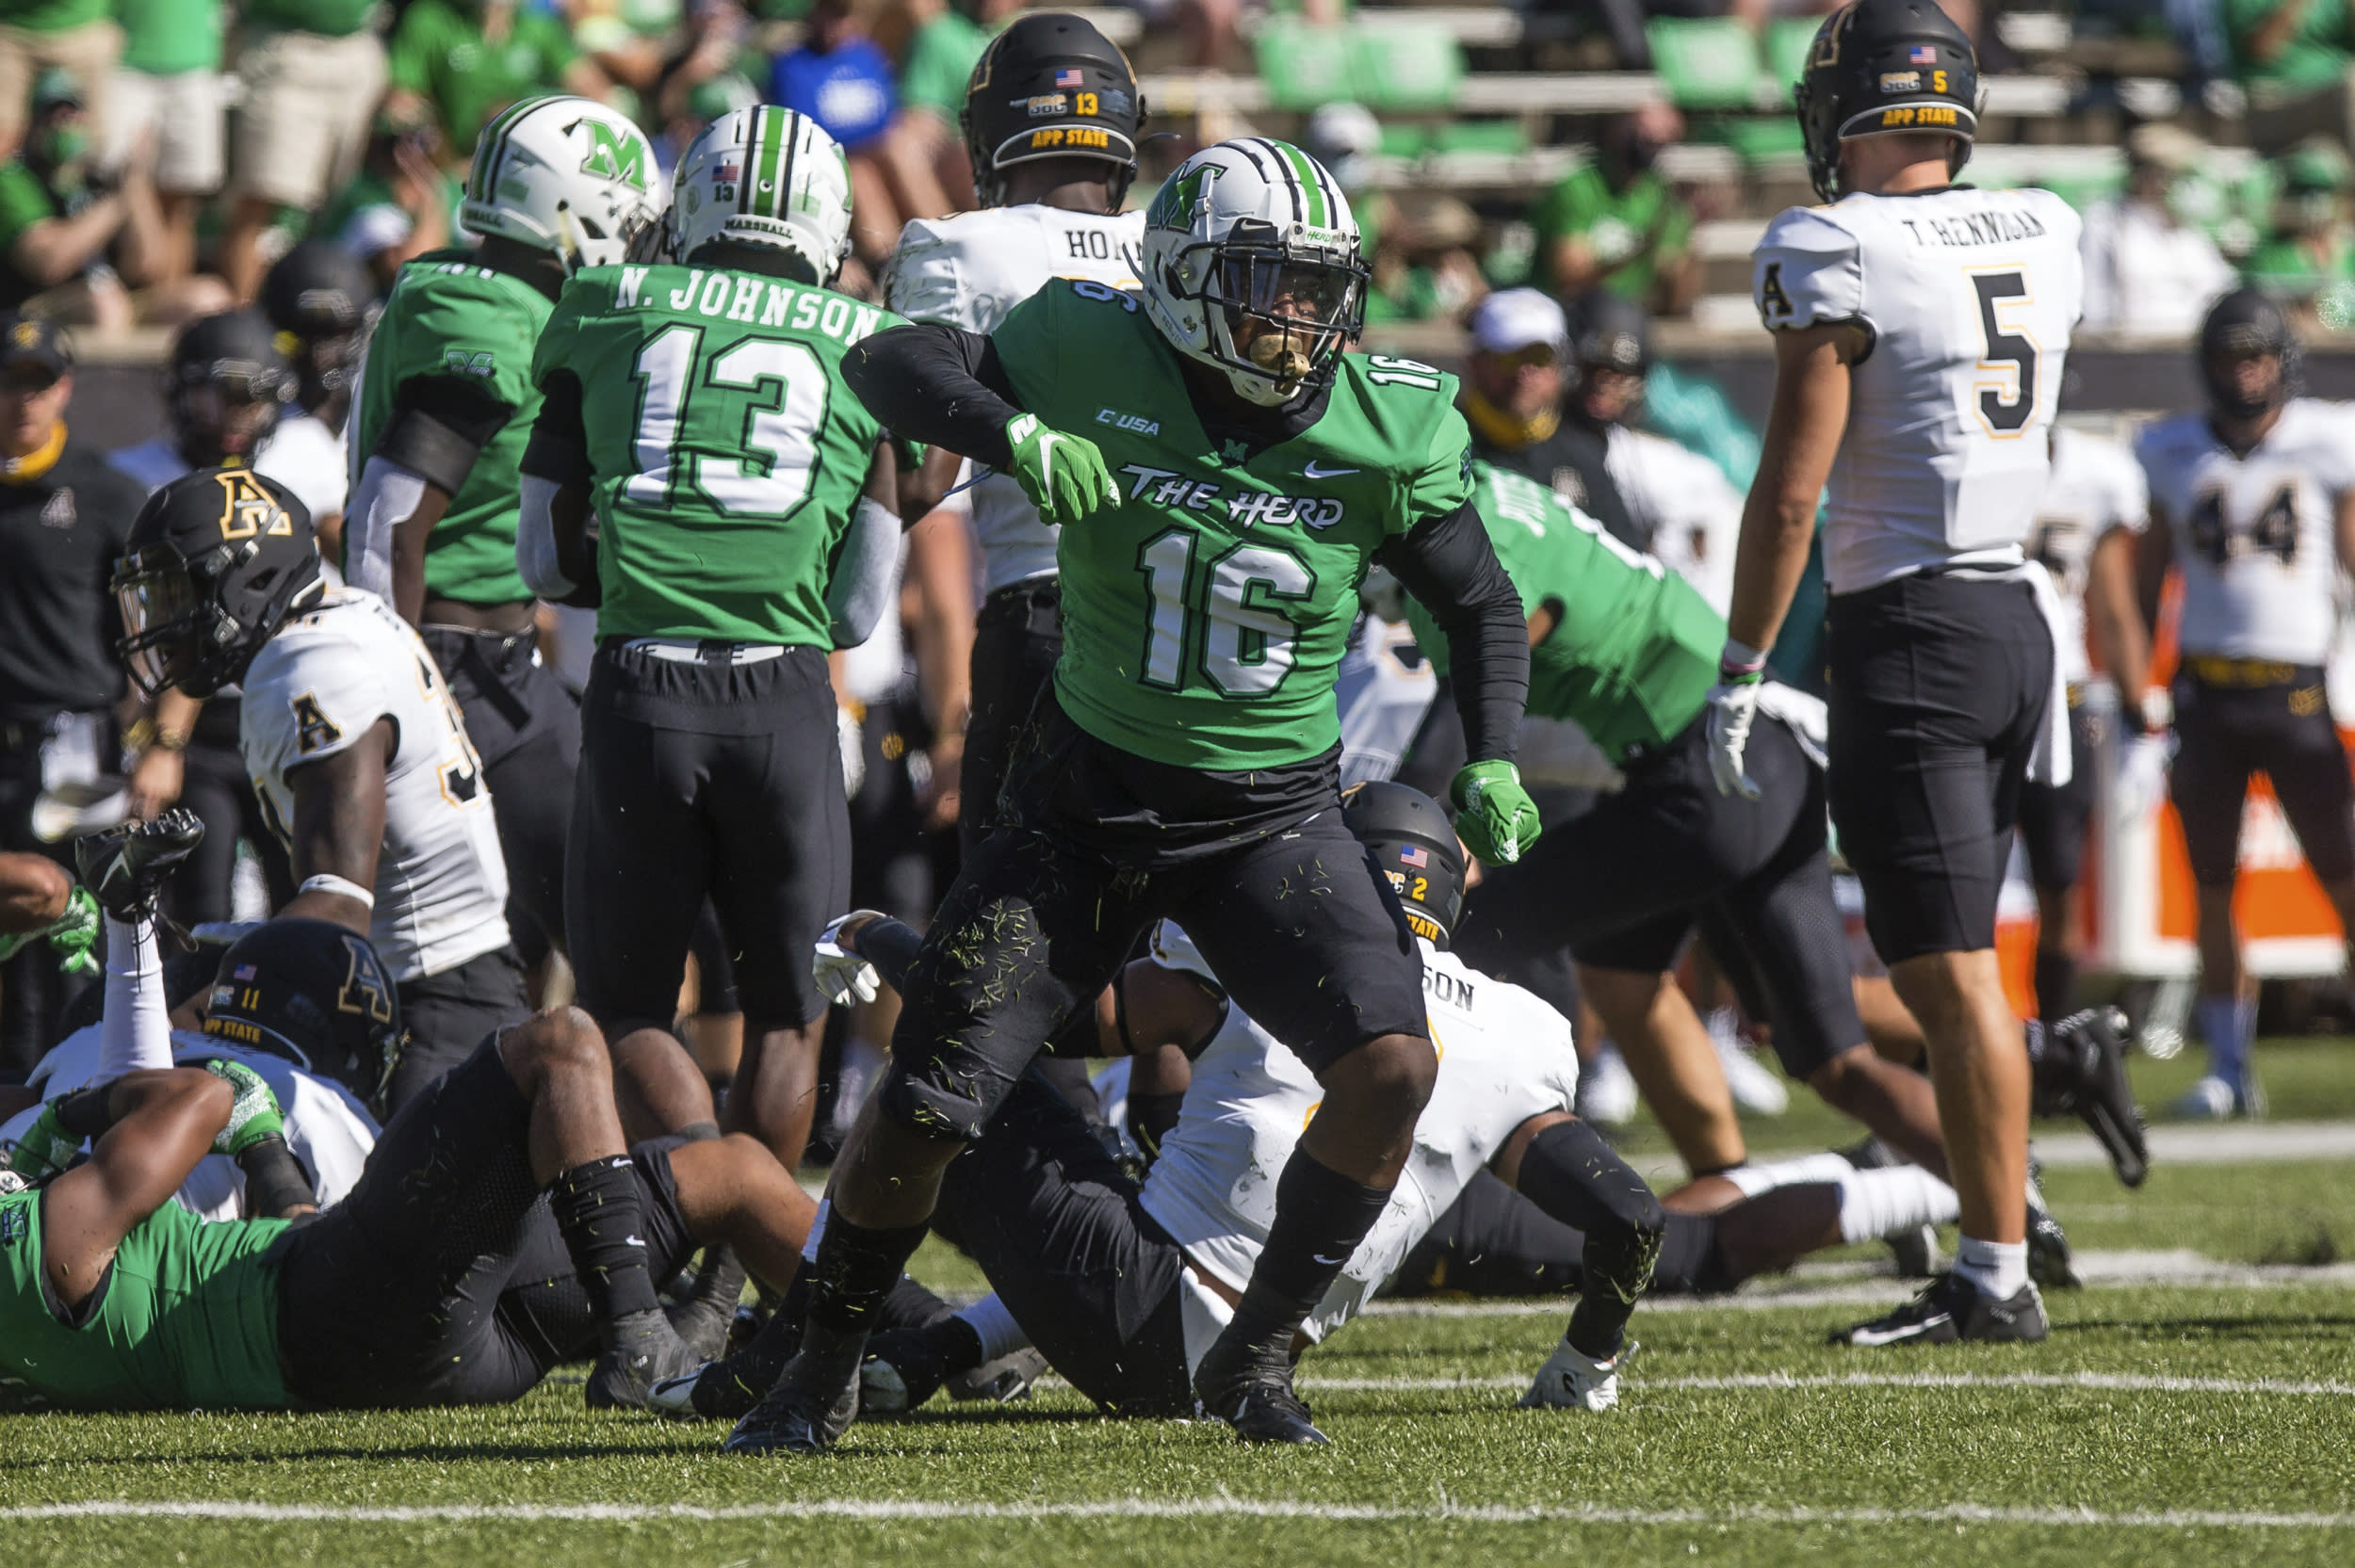 Marshall linebacker Brian Cavicante (16) celebrates after a stop against Appalachian State during an NCAA college football game Saturday, Sept. 19, 2020, in Huntington, W.Va. (Sholten Singer/The Herald-Dispatch via AP)